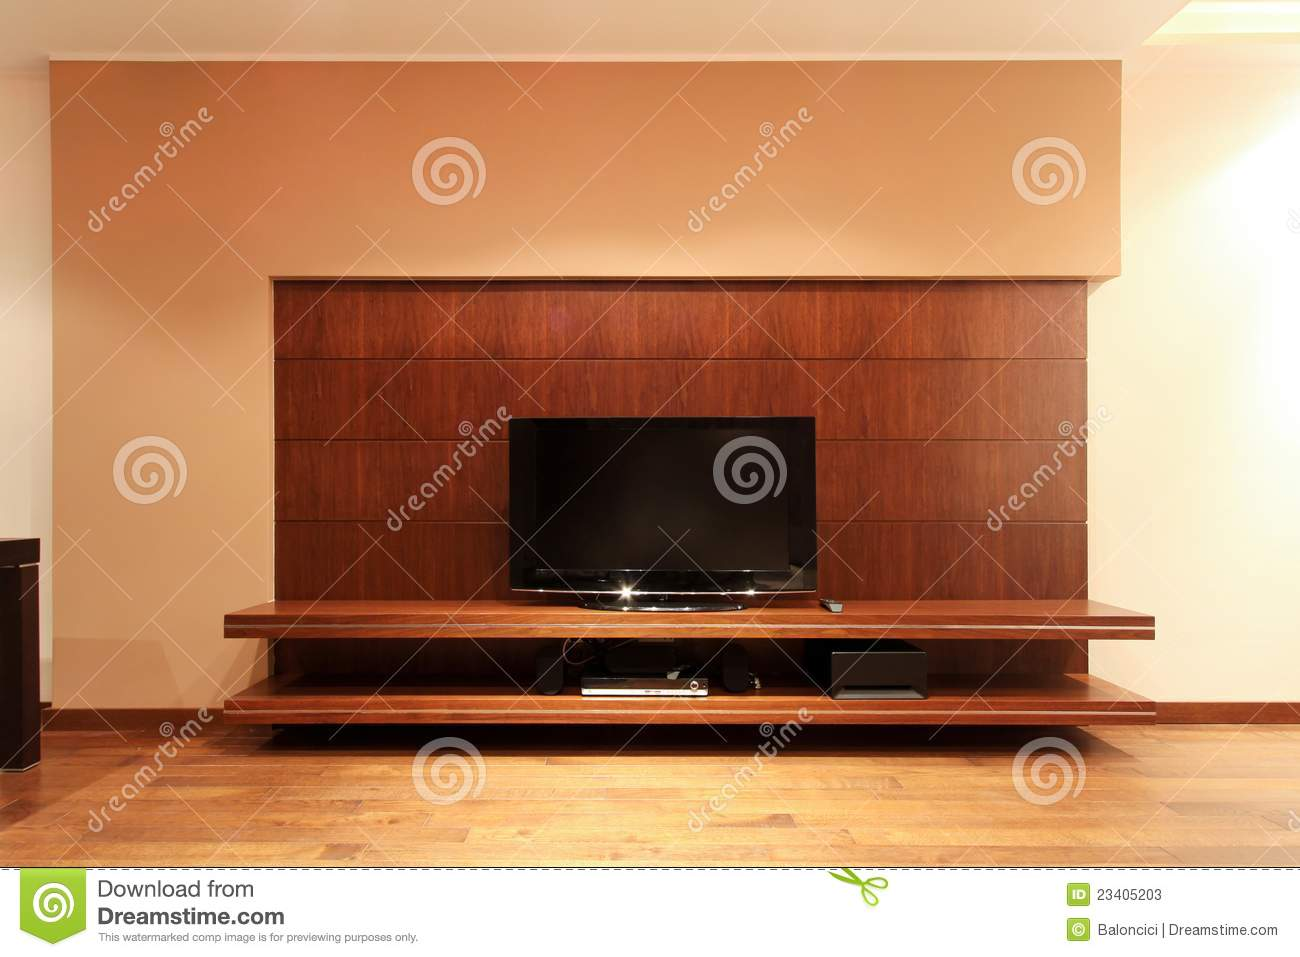 TV Shelf Stock Photos - Image: 23405203